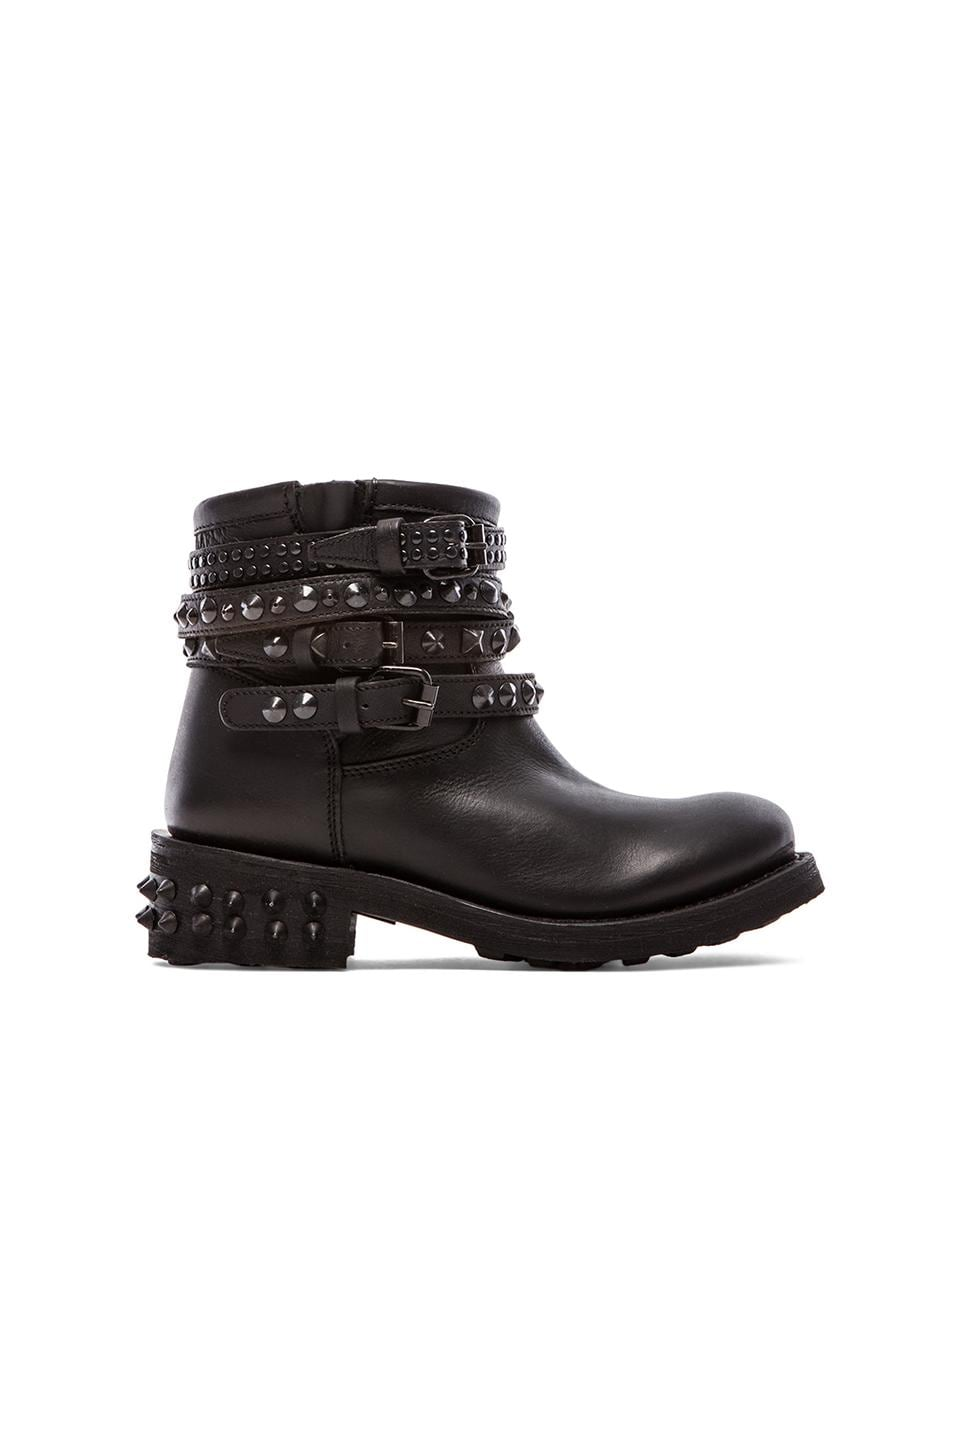 Ash Tatum Bis Boot in Black & Antic Silver